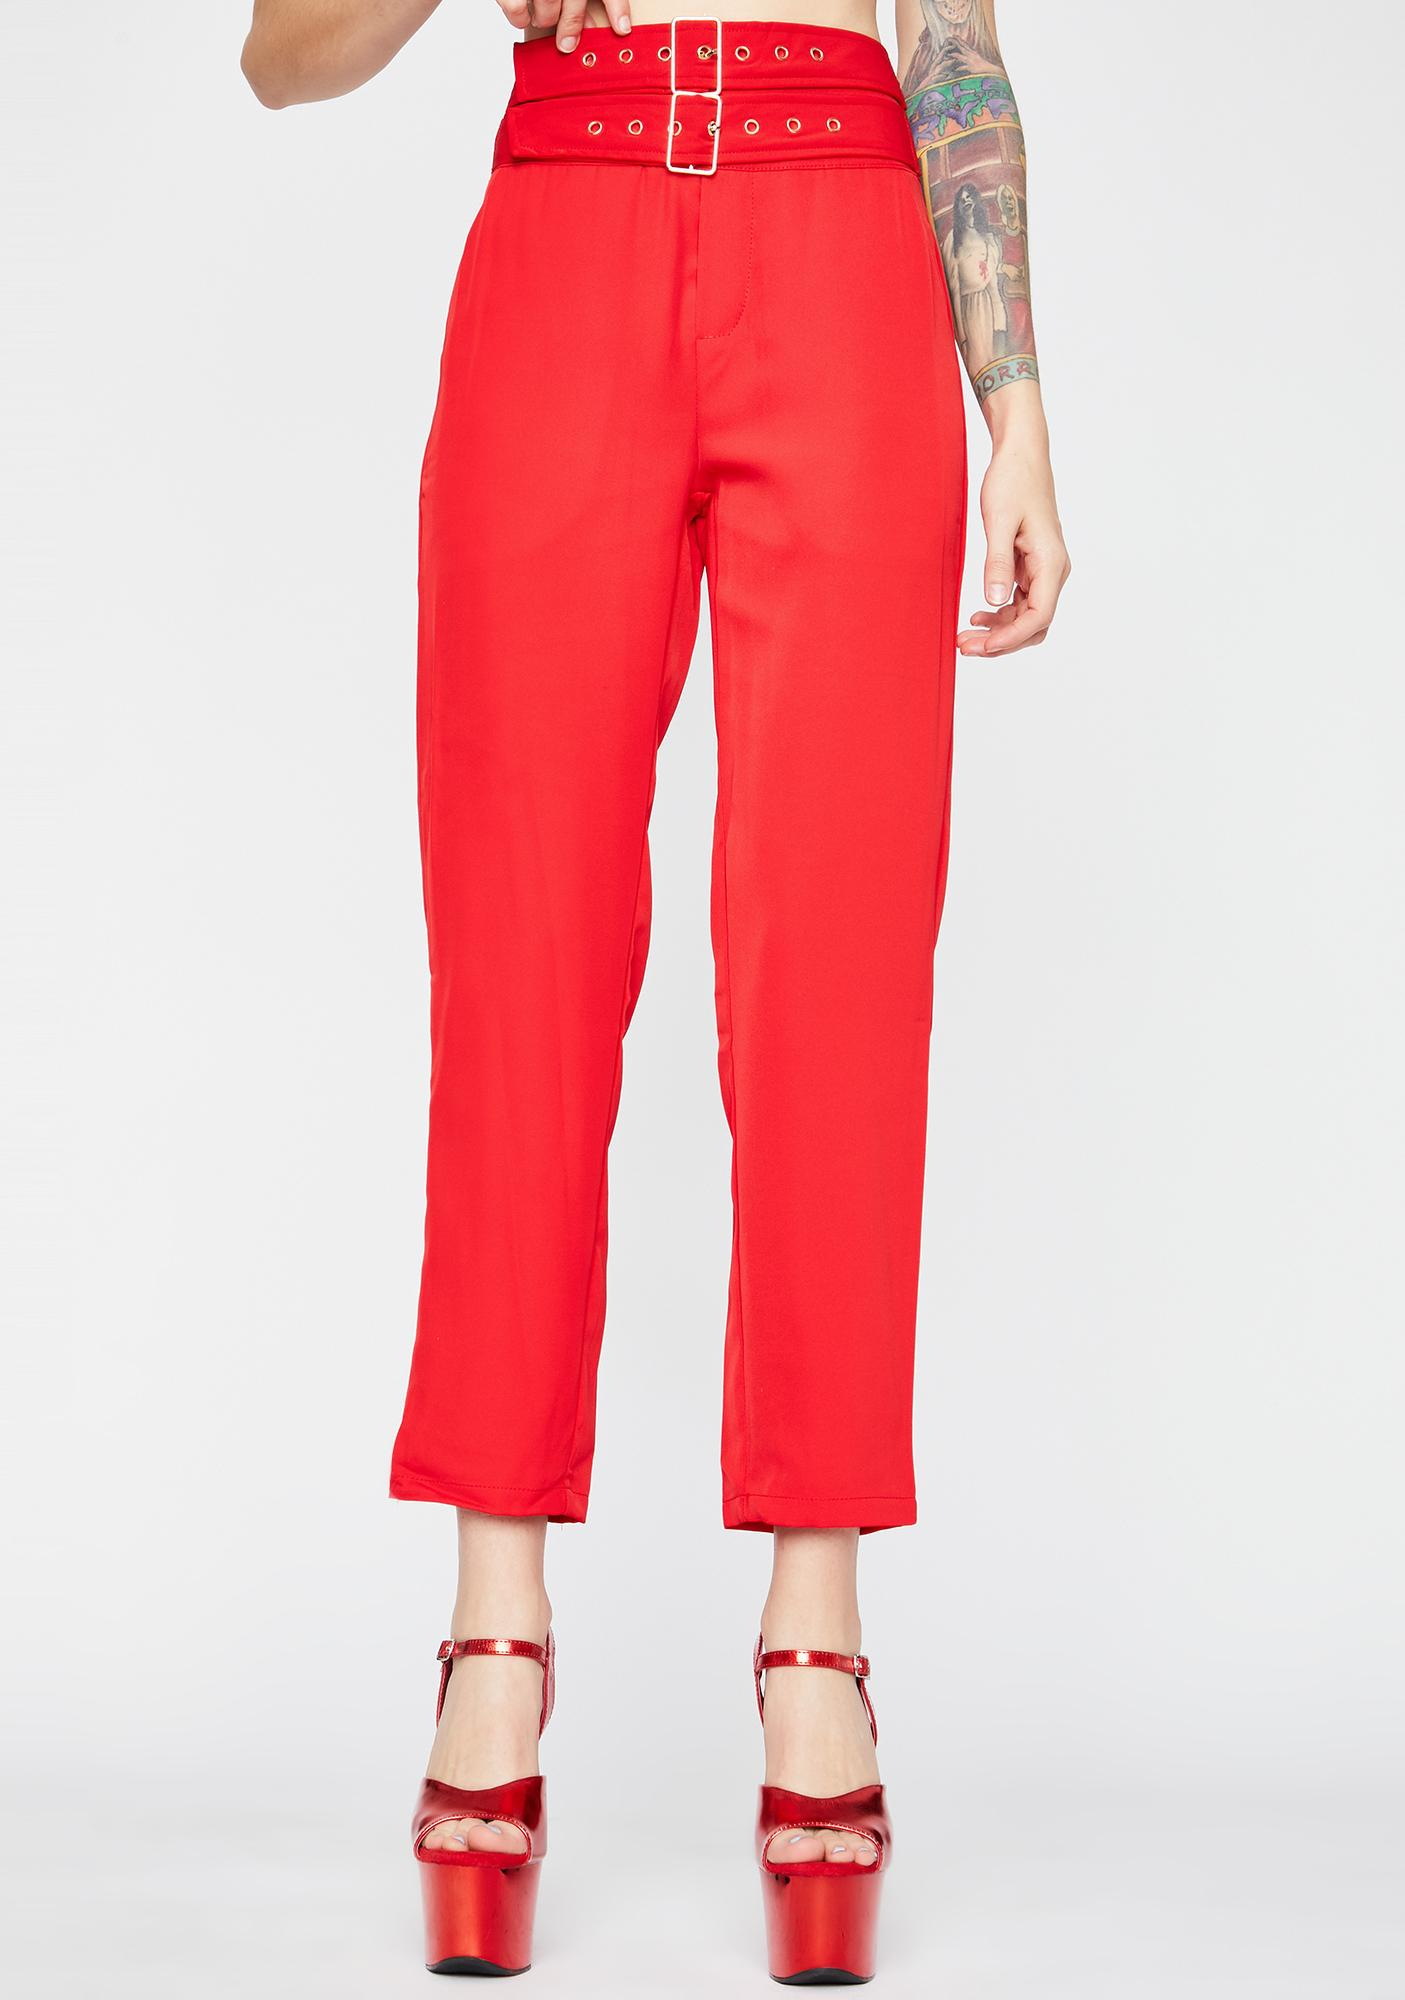 Hot Strapped For Cash Cropped Pants